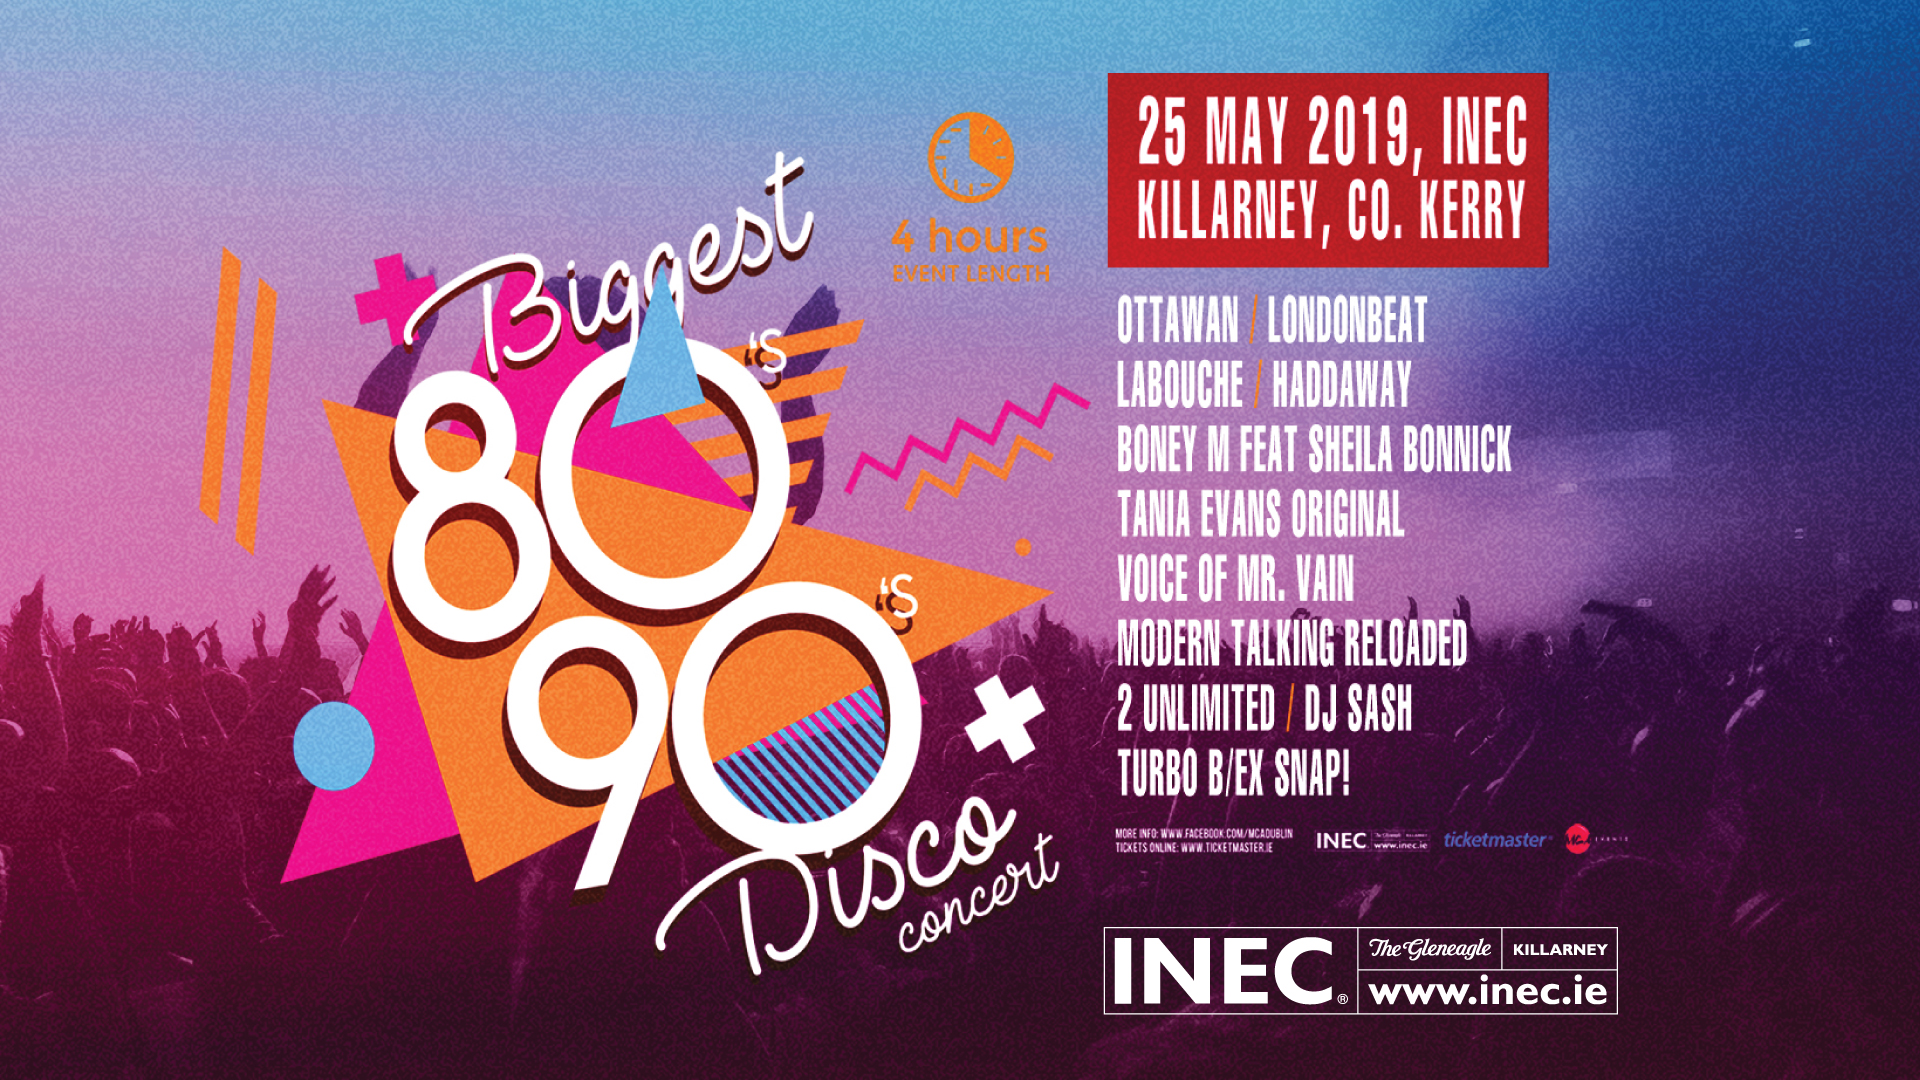 Biggest 80's & 90's Disco and Concert comes to the INEC Killarney May 25th 2019